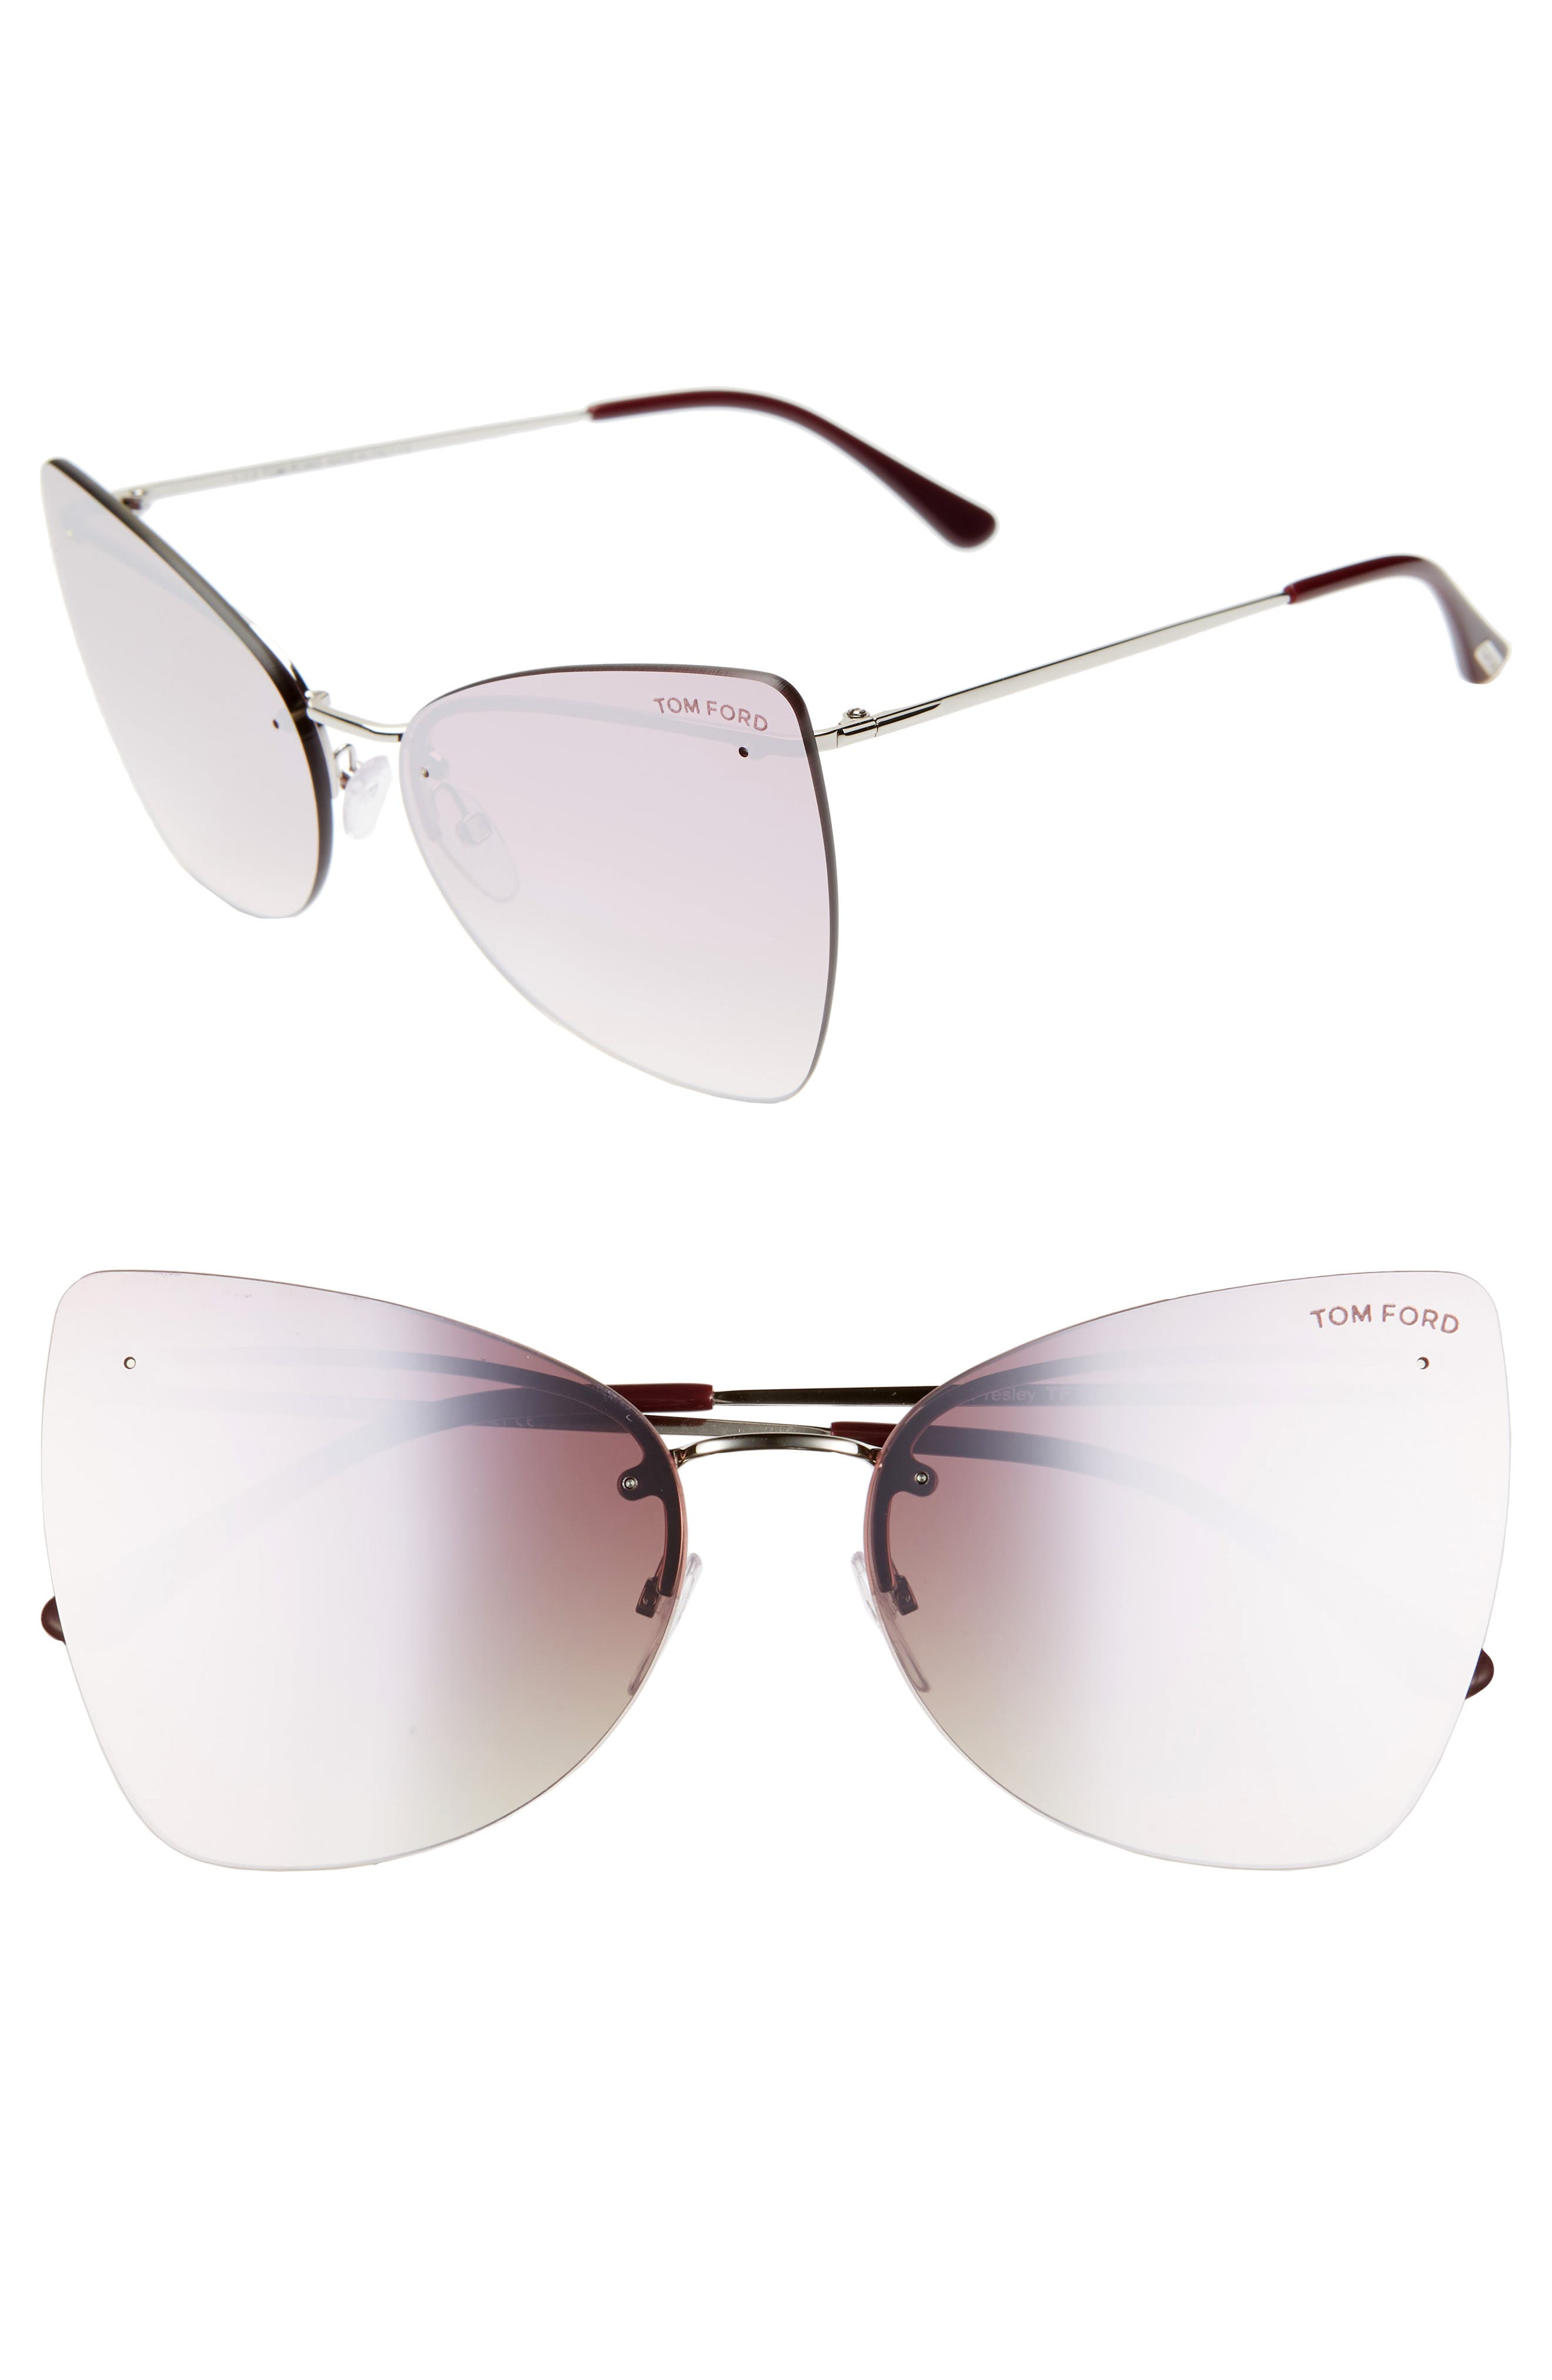 Tom Ford Presley 61Mm Butterfly Sunglasses - Palladium/ Purple/ Red Pearl